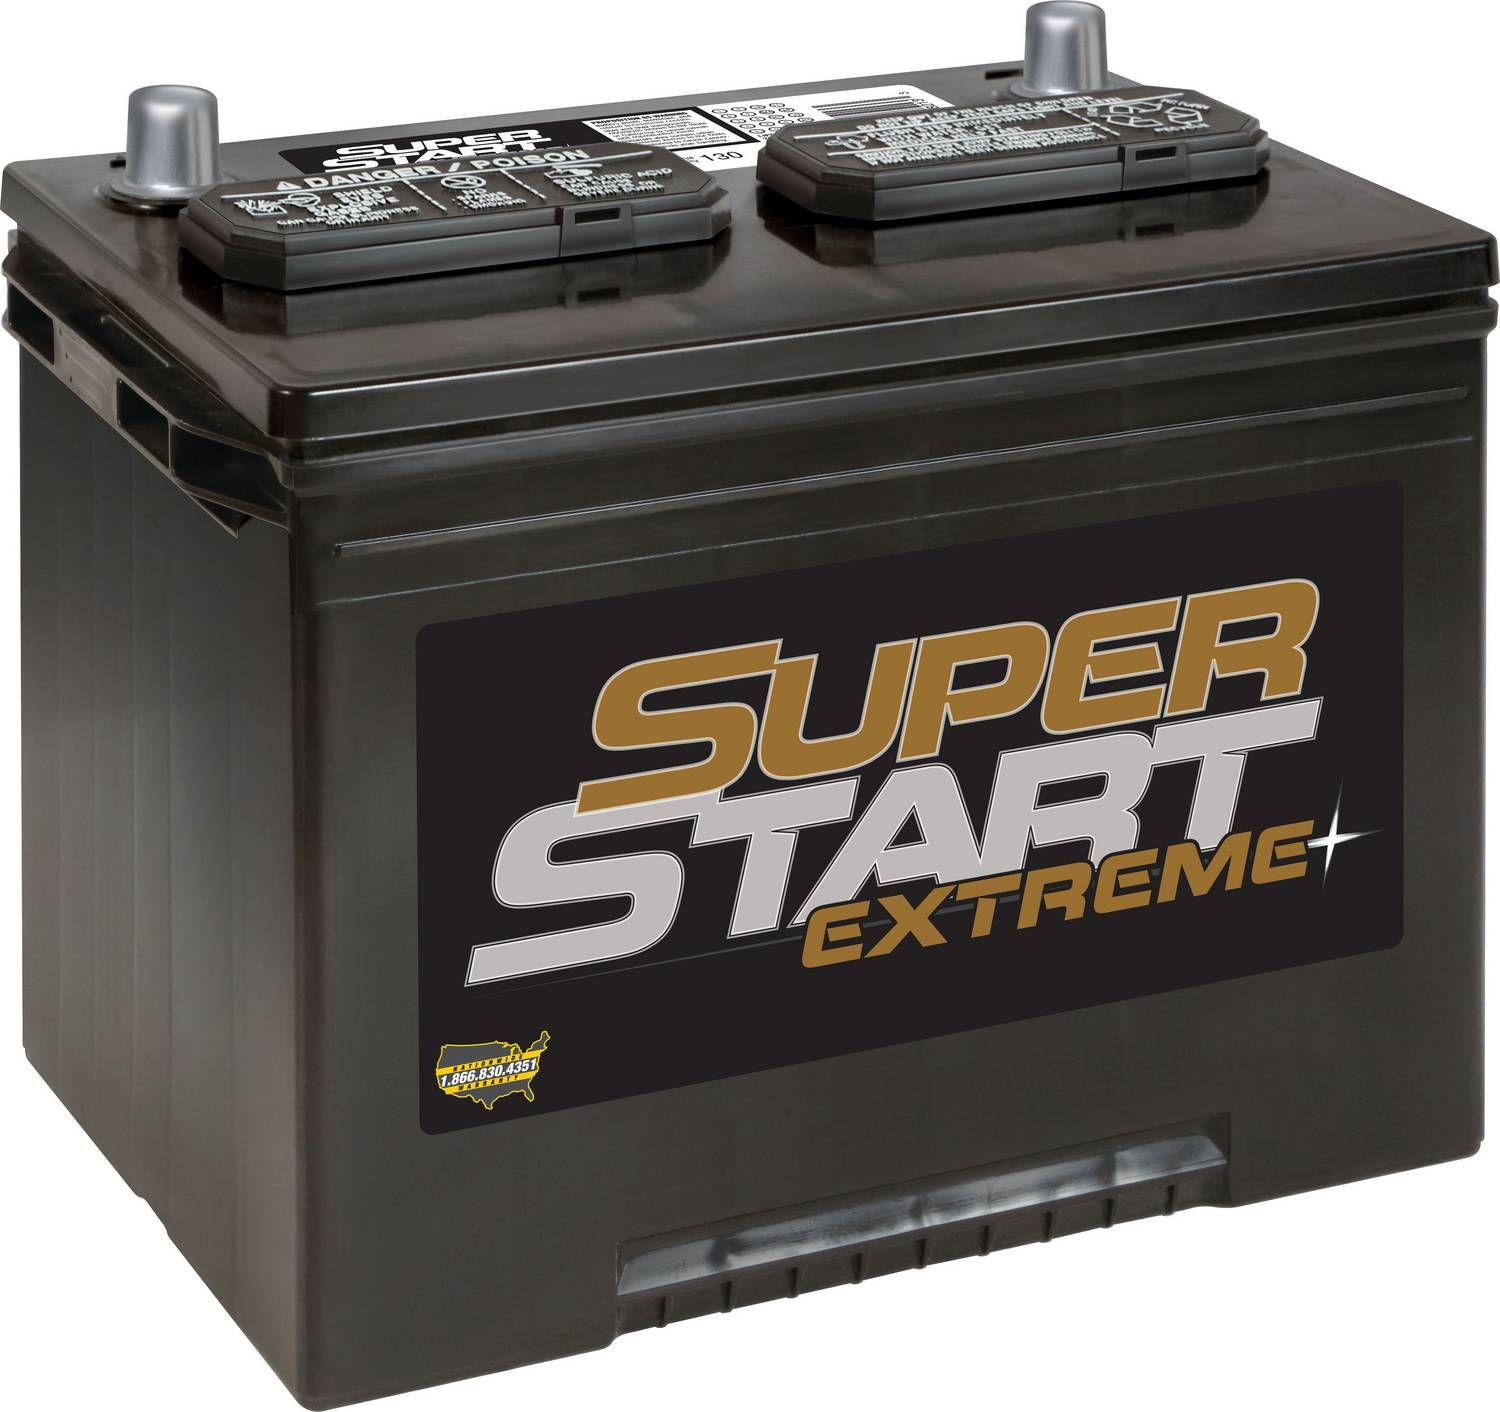 Super Start Extreme Group Size 24f Top Post Battery 24rextj O Reilly Auto Parts In 2020 Super Start Super Auto Parts